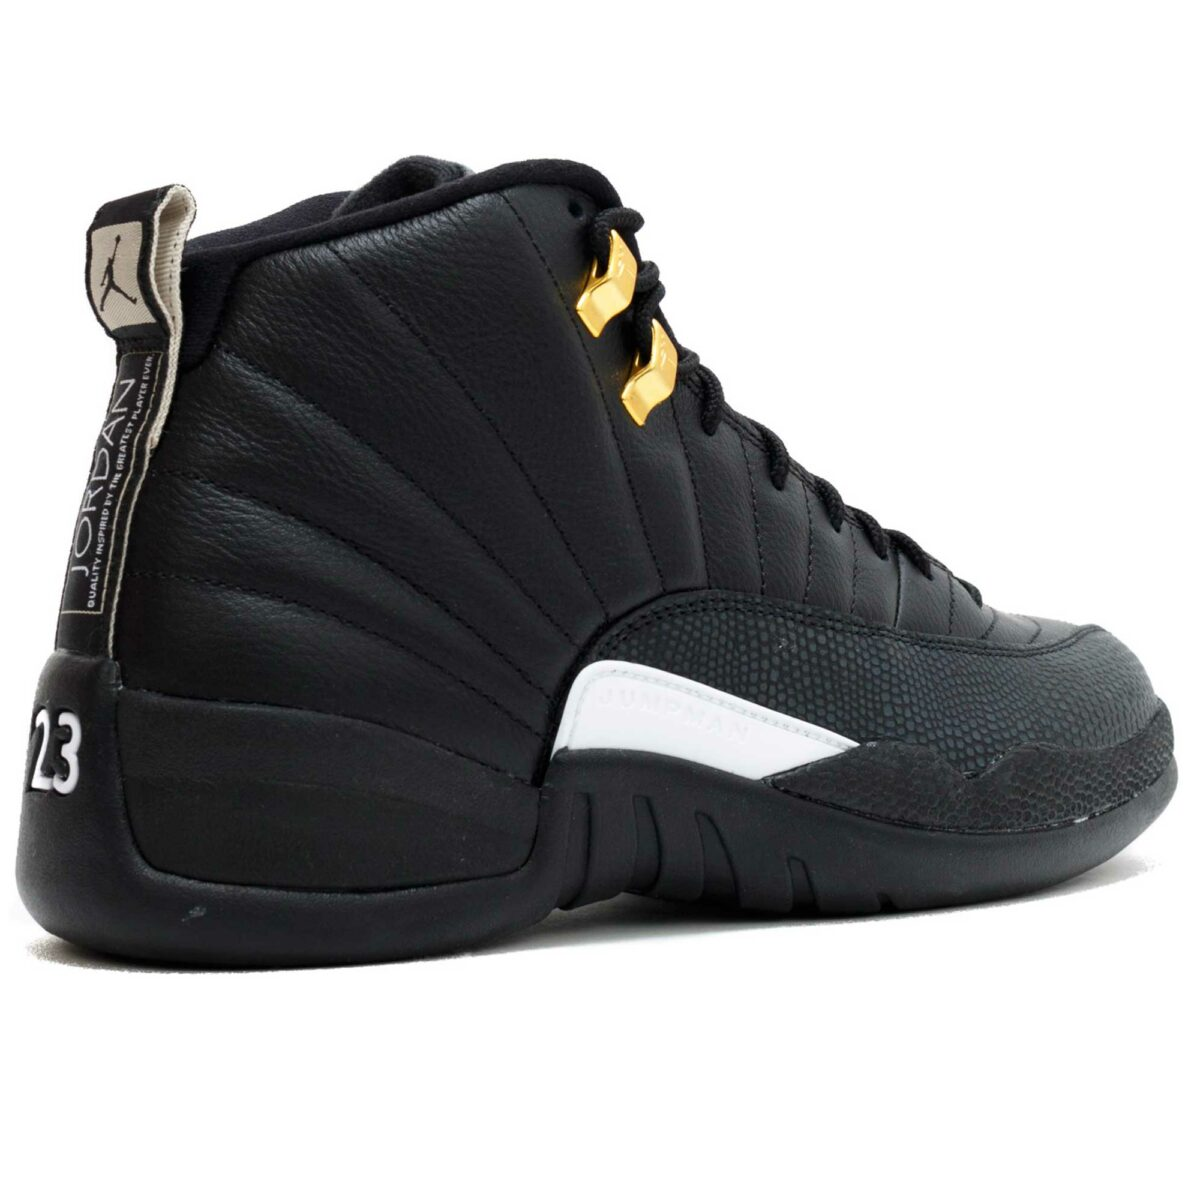 nike air Jordan 12 XII retro the master 130690-013 купить